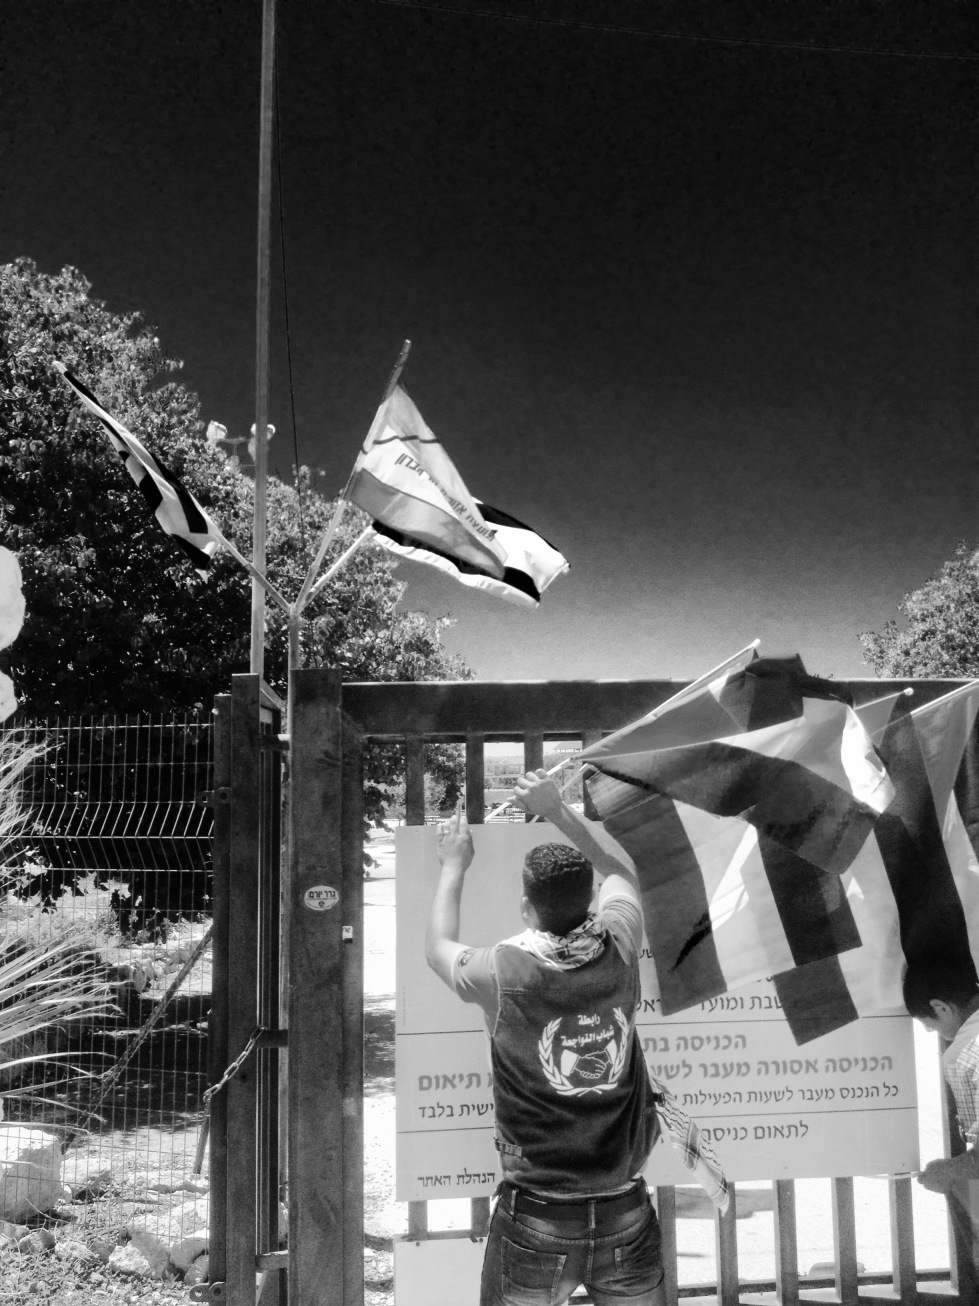 Meanwhile, marchers managed to hang Palestinian flags on the gated entrance to the their old village.